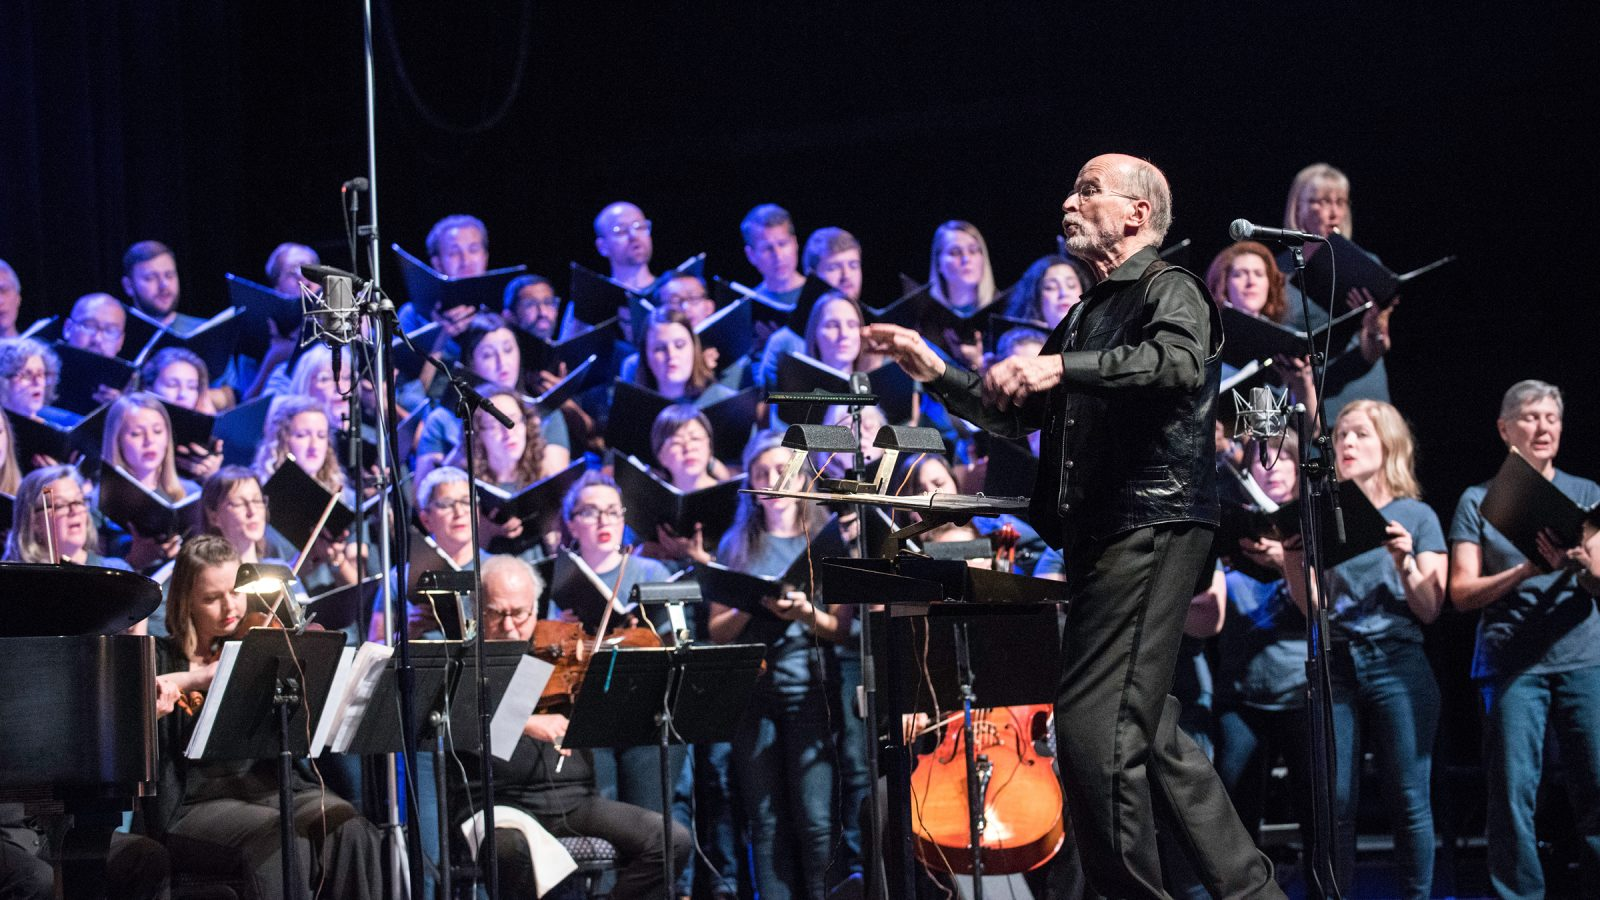 Conductor in front of singers and instrumentalists